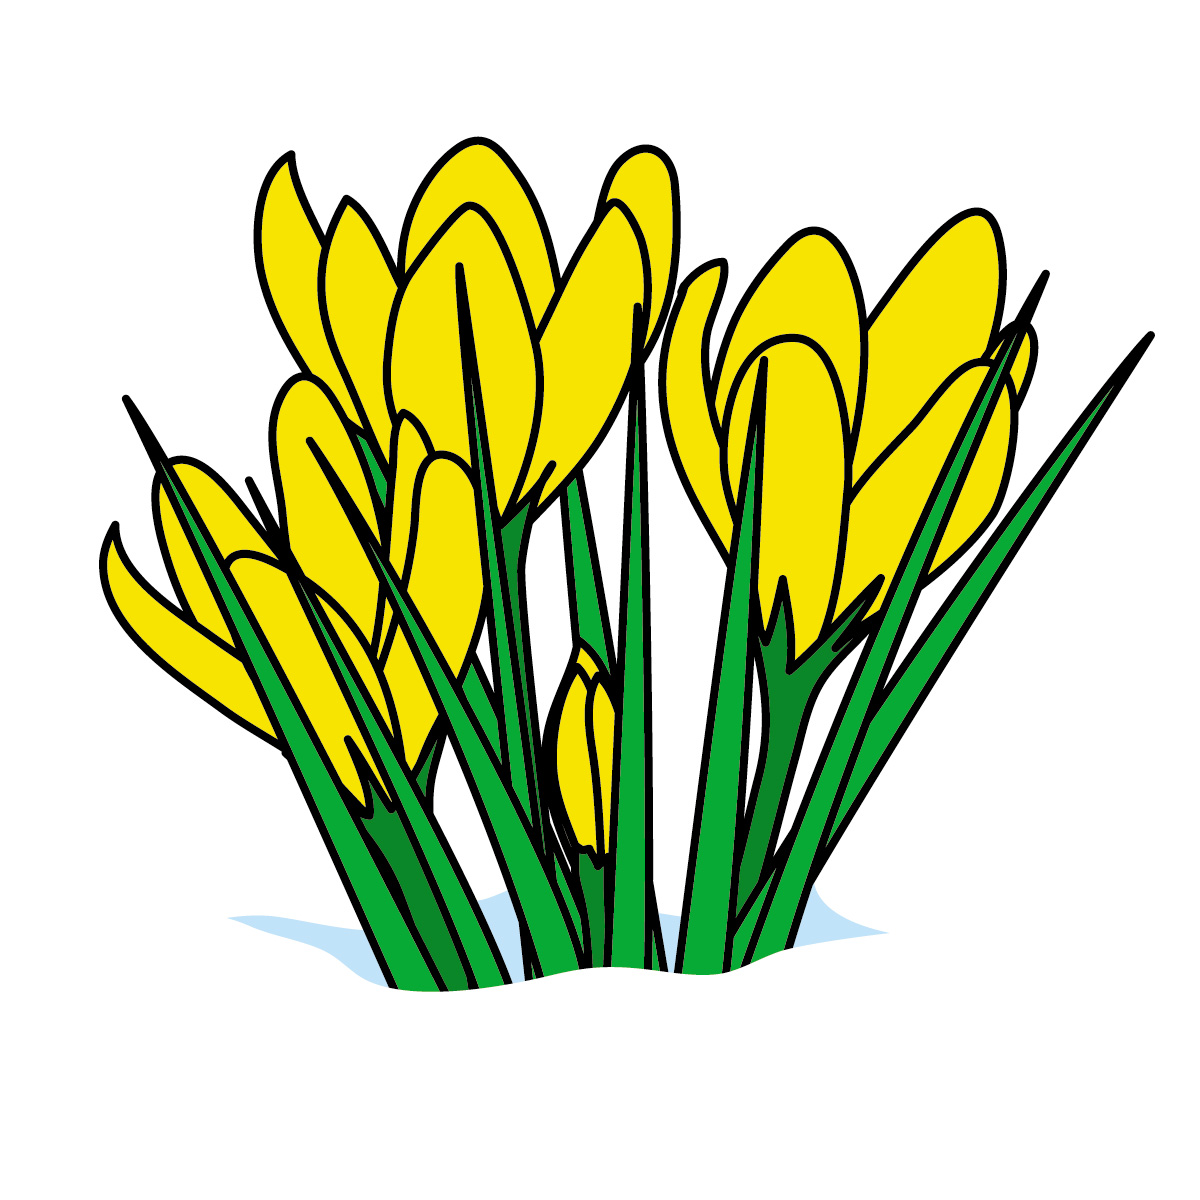 Spring Clip Art Free | Clipart library --Spring Clip Art Free | Clipart library - Free Clipart Images-13